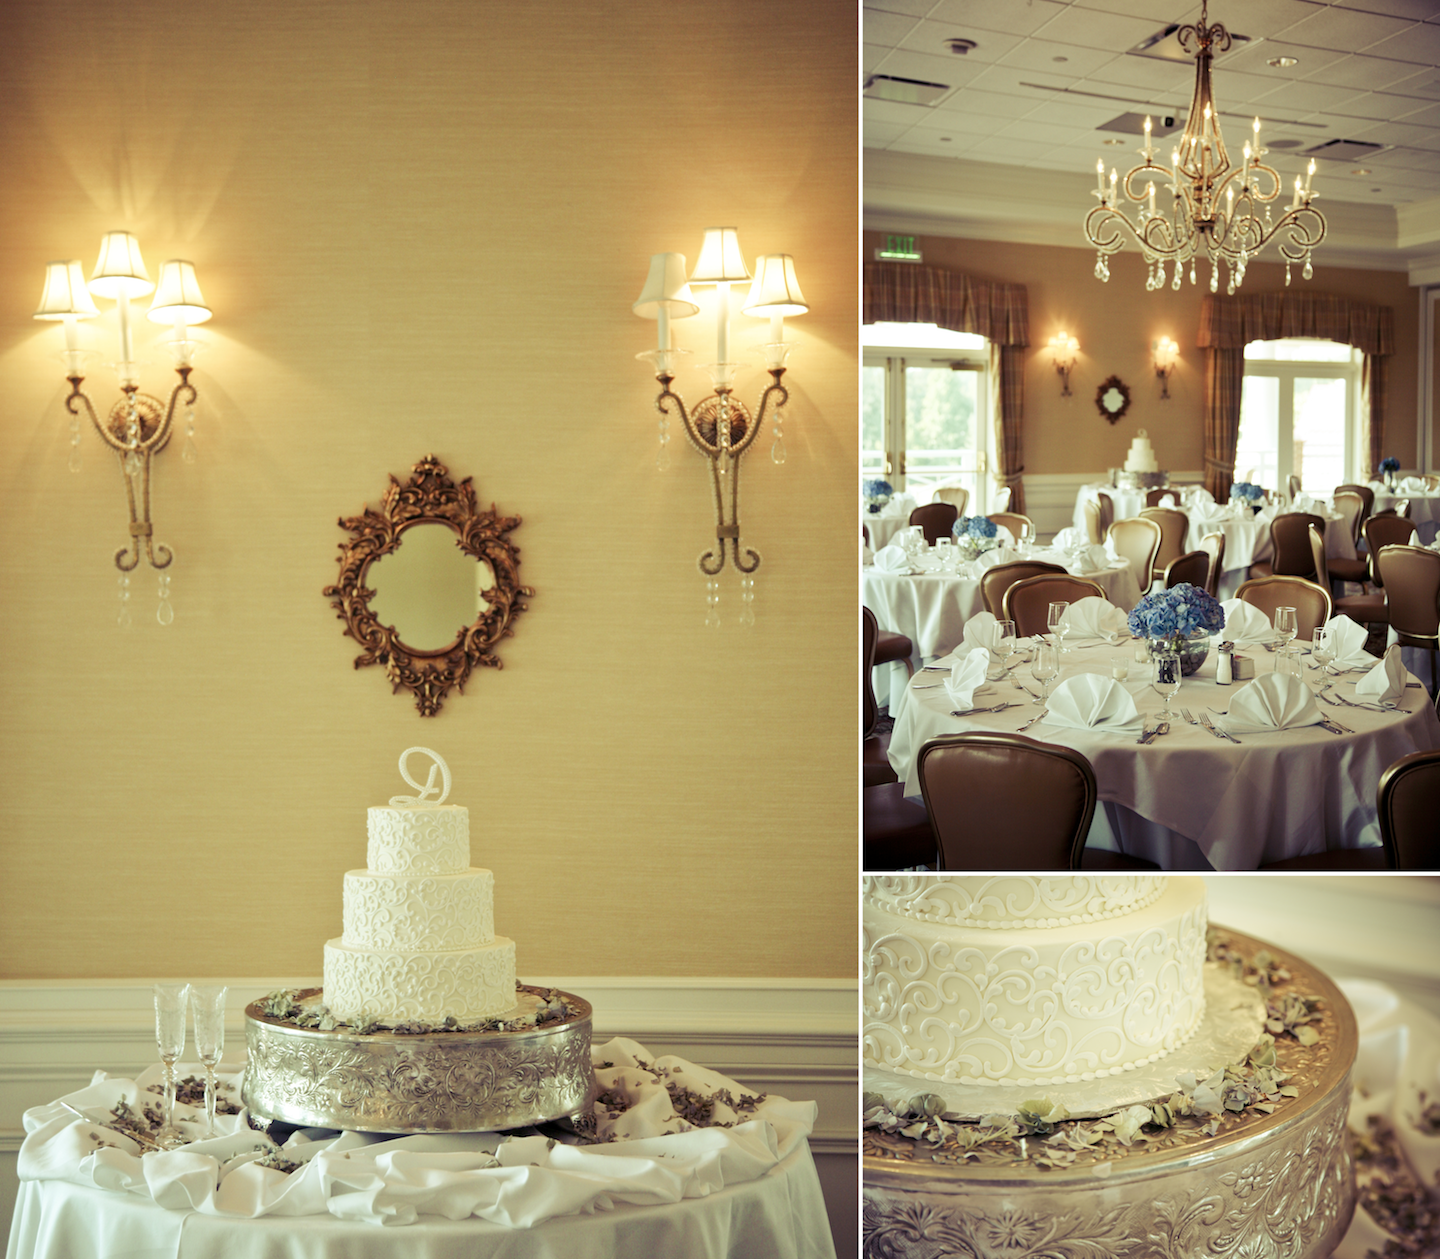 Charming-country-club-wedding-in-georgia-wedding-cake.original